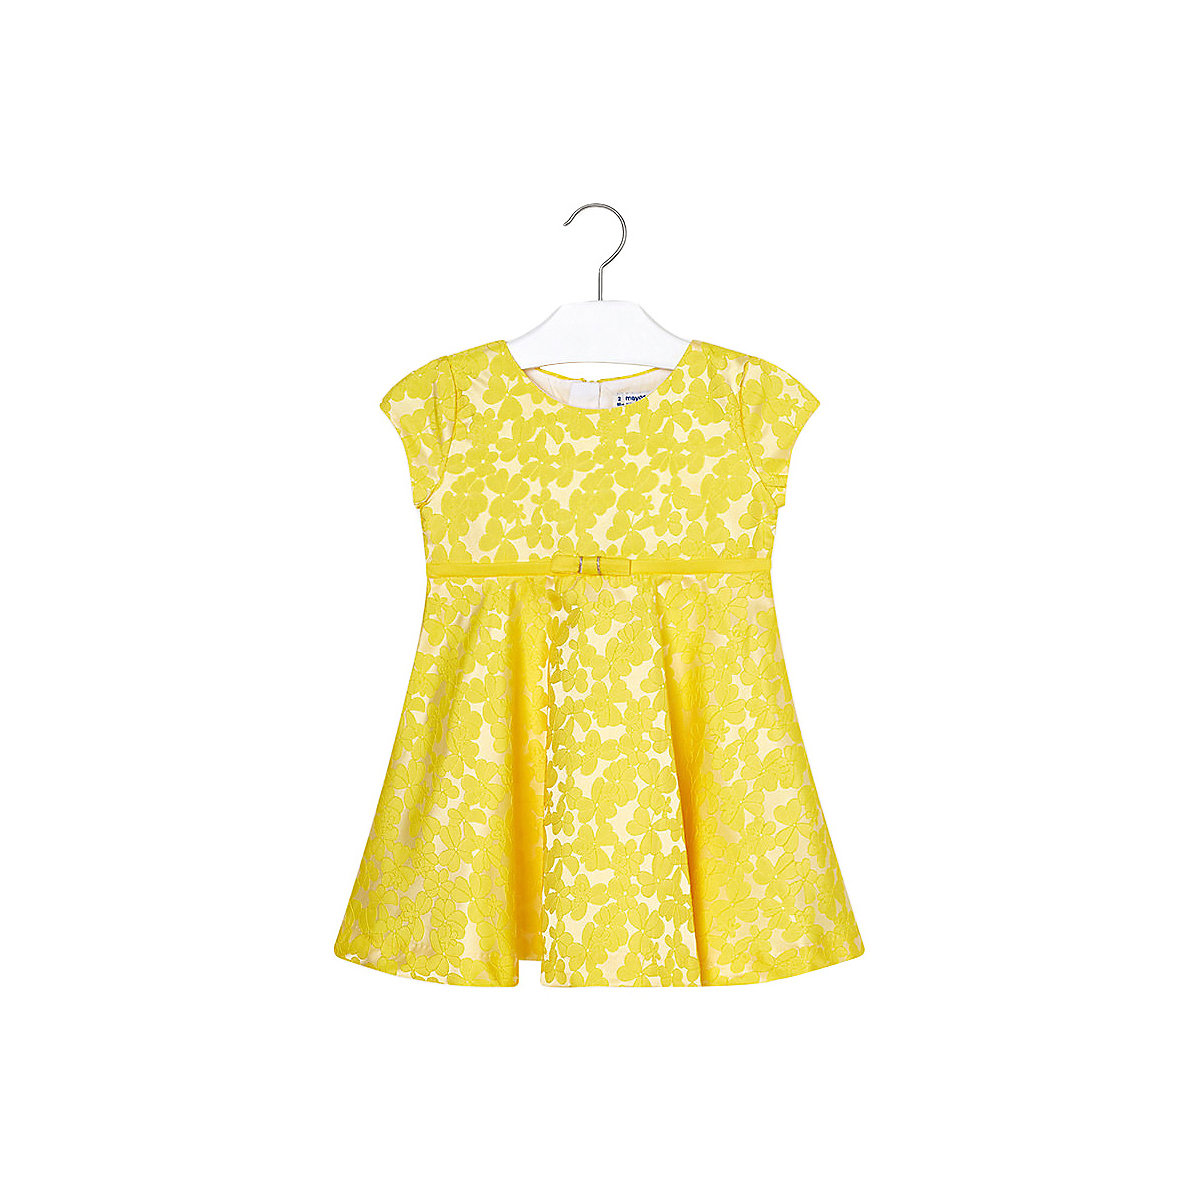 MAYORAL Dresses 10690715 Girl Children Party fitted pleated skirt Yellow Polyester Preppy Style Floral Knee-Length Short Sleeve